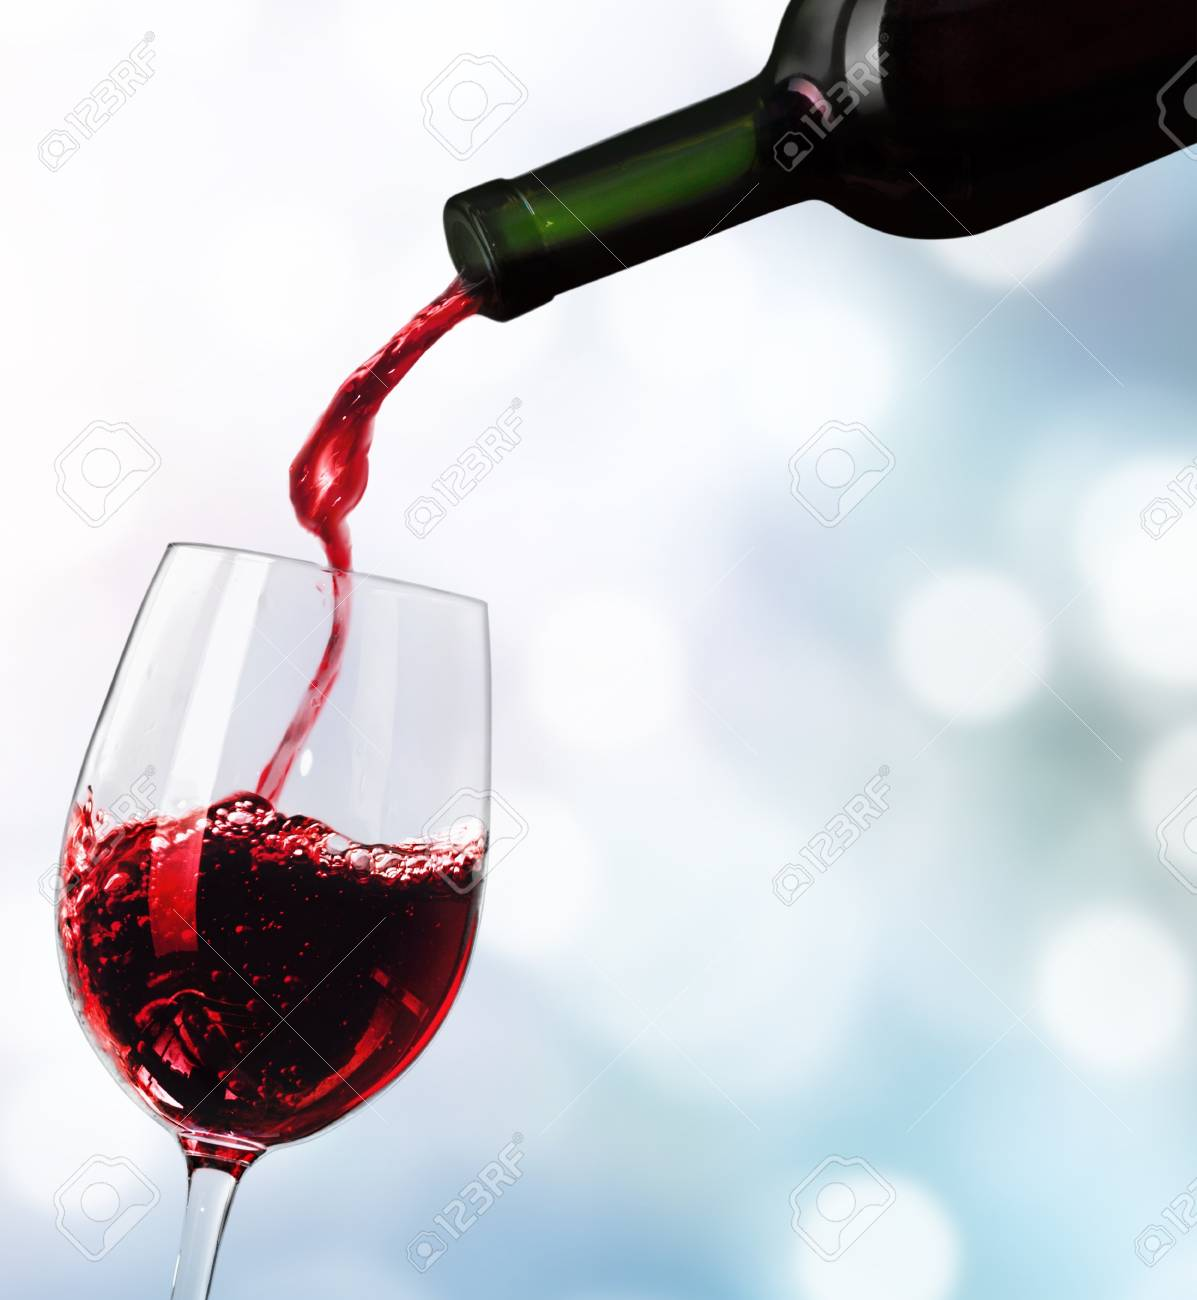 Red wine pouring in glass isolated on white background - 124596563